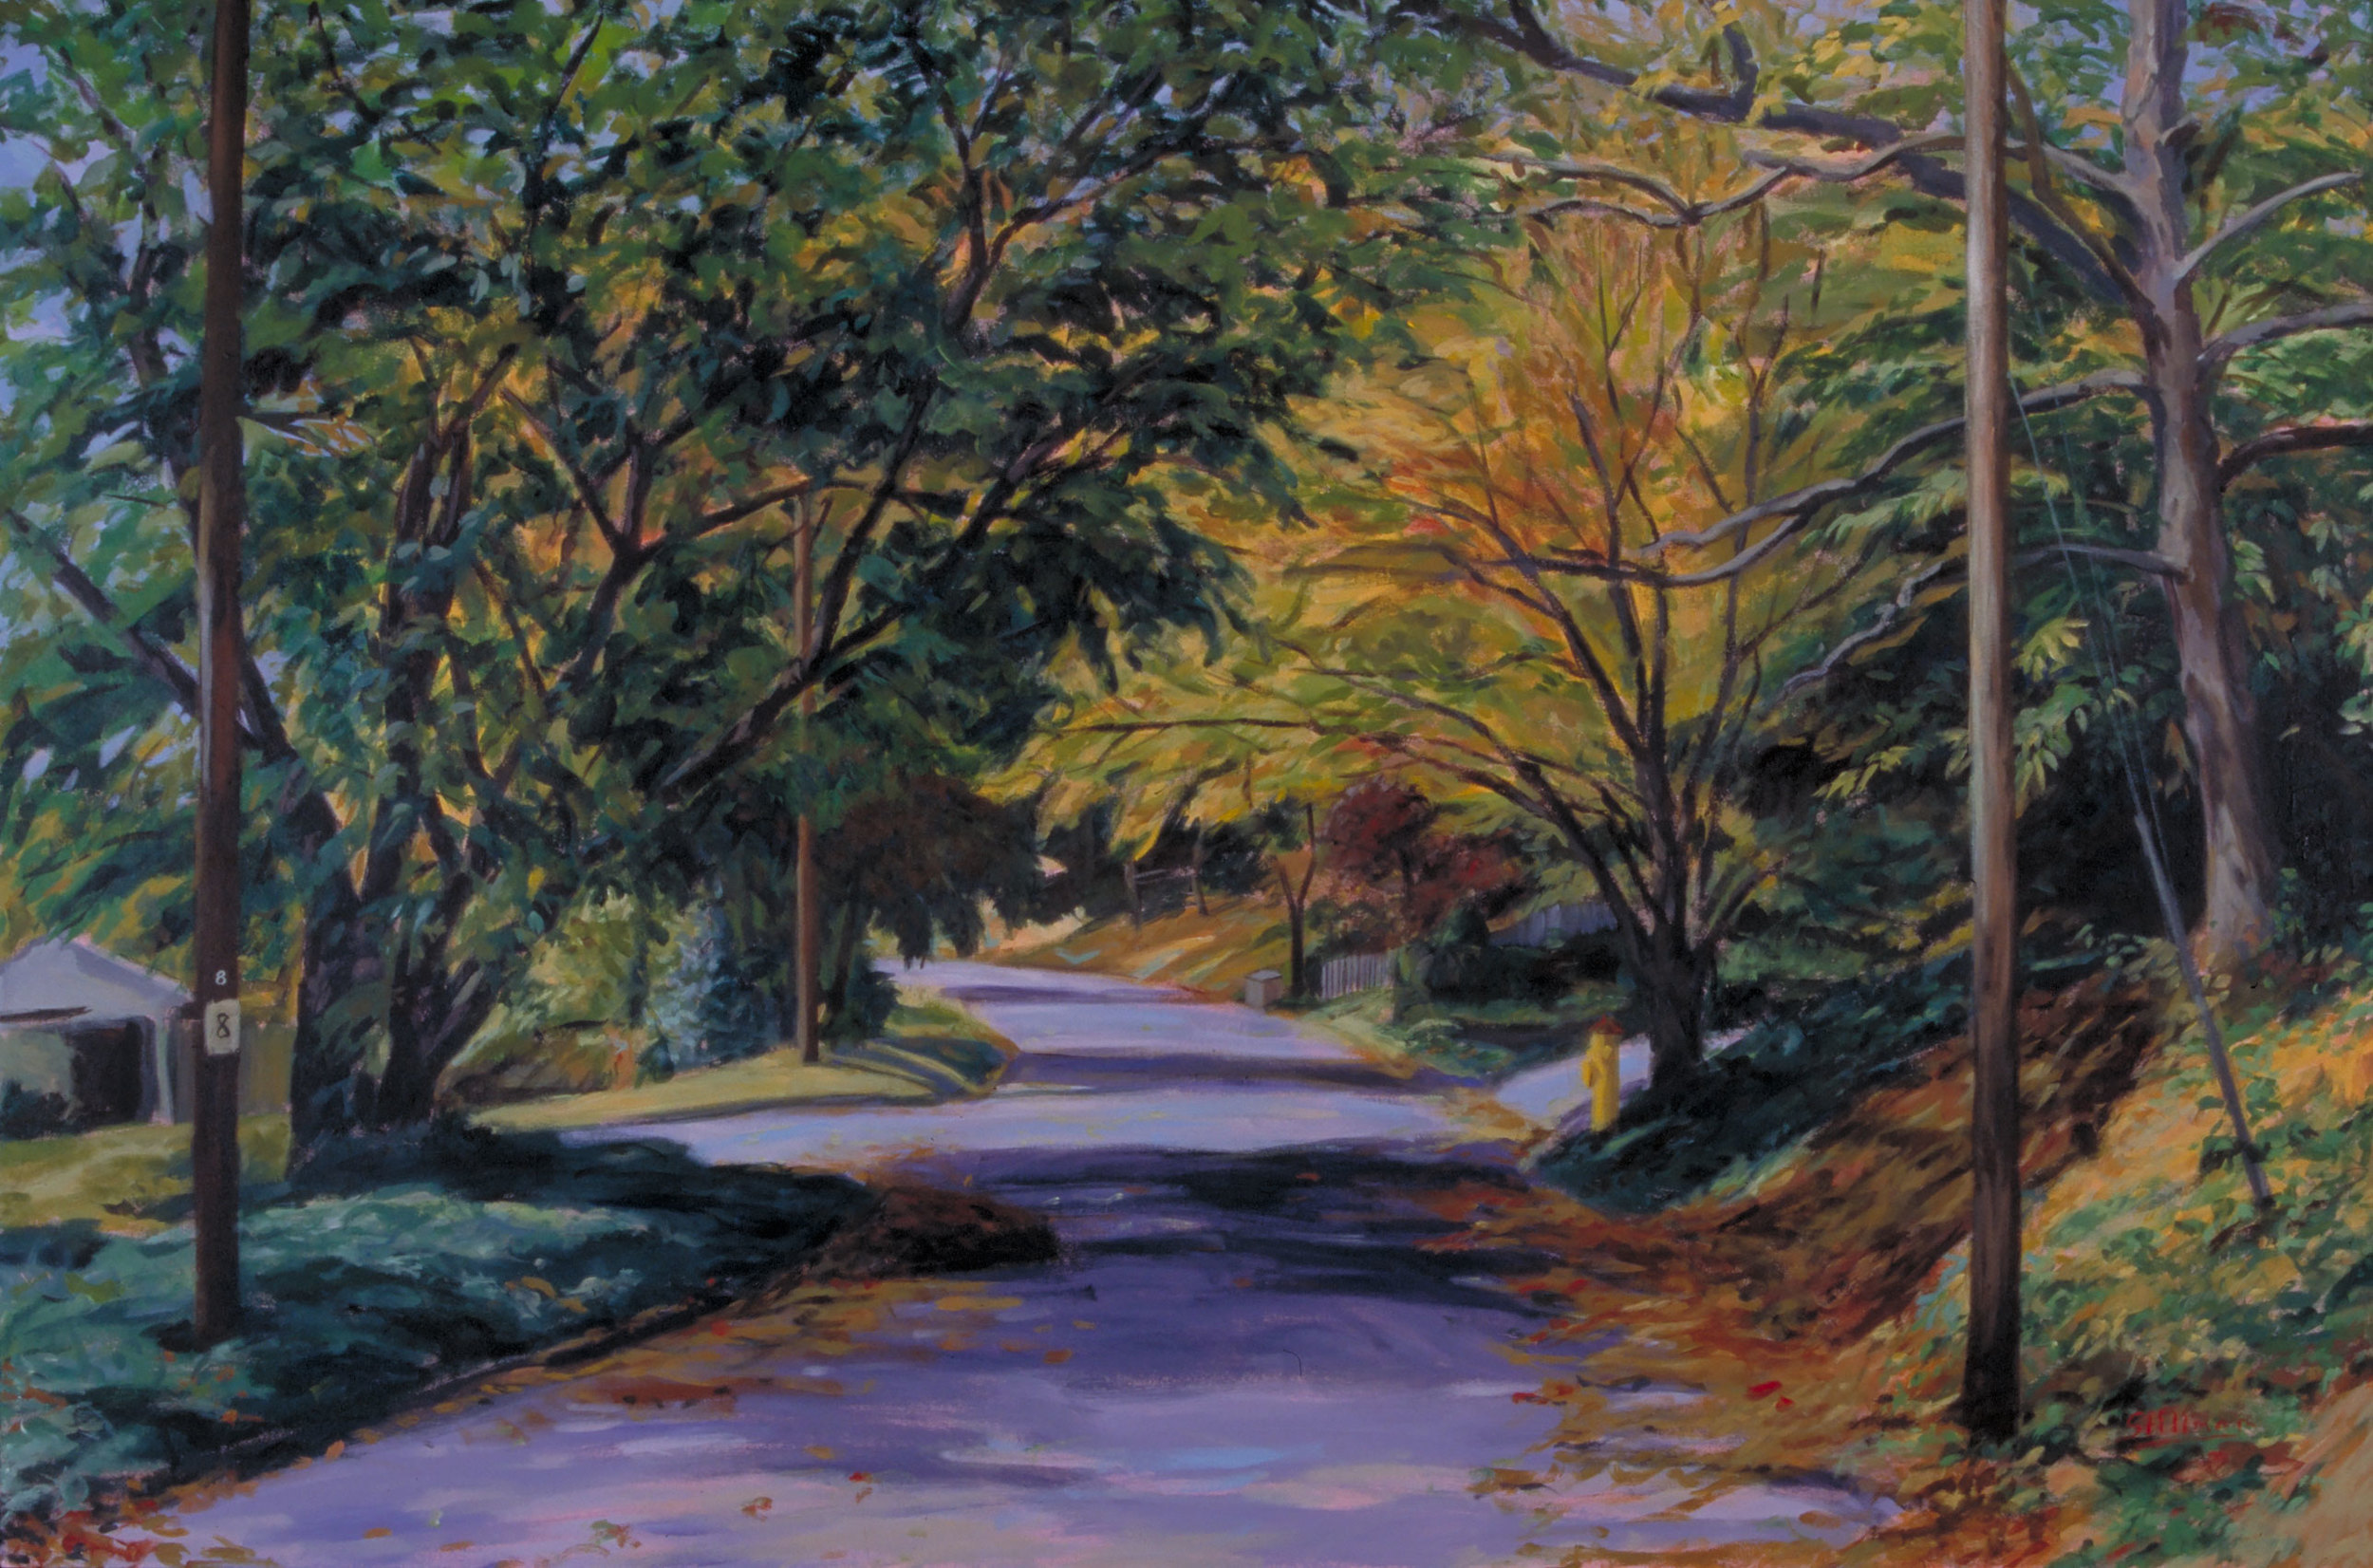 Autumn Road, sold